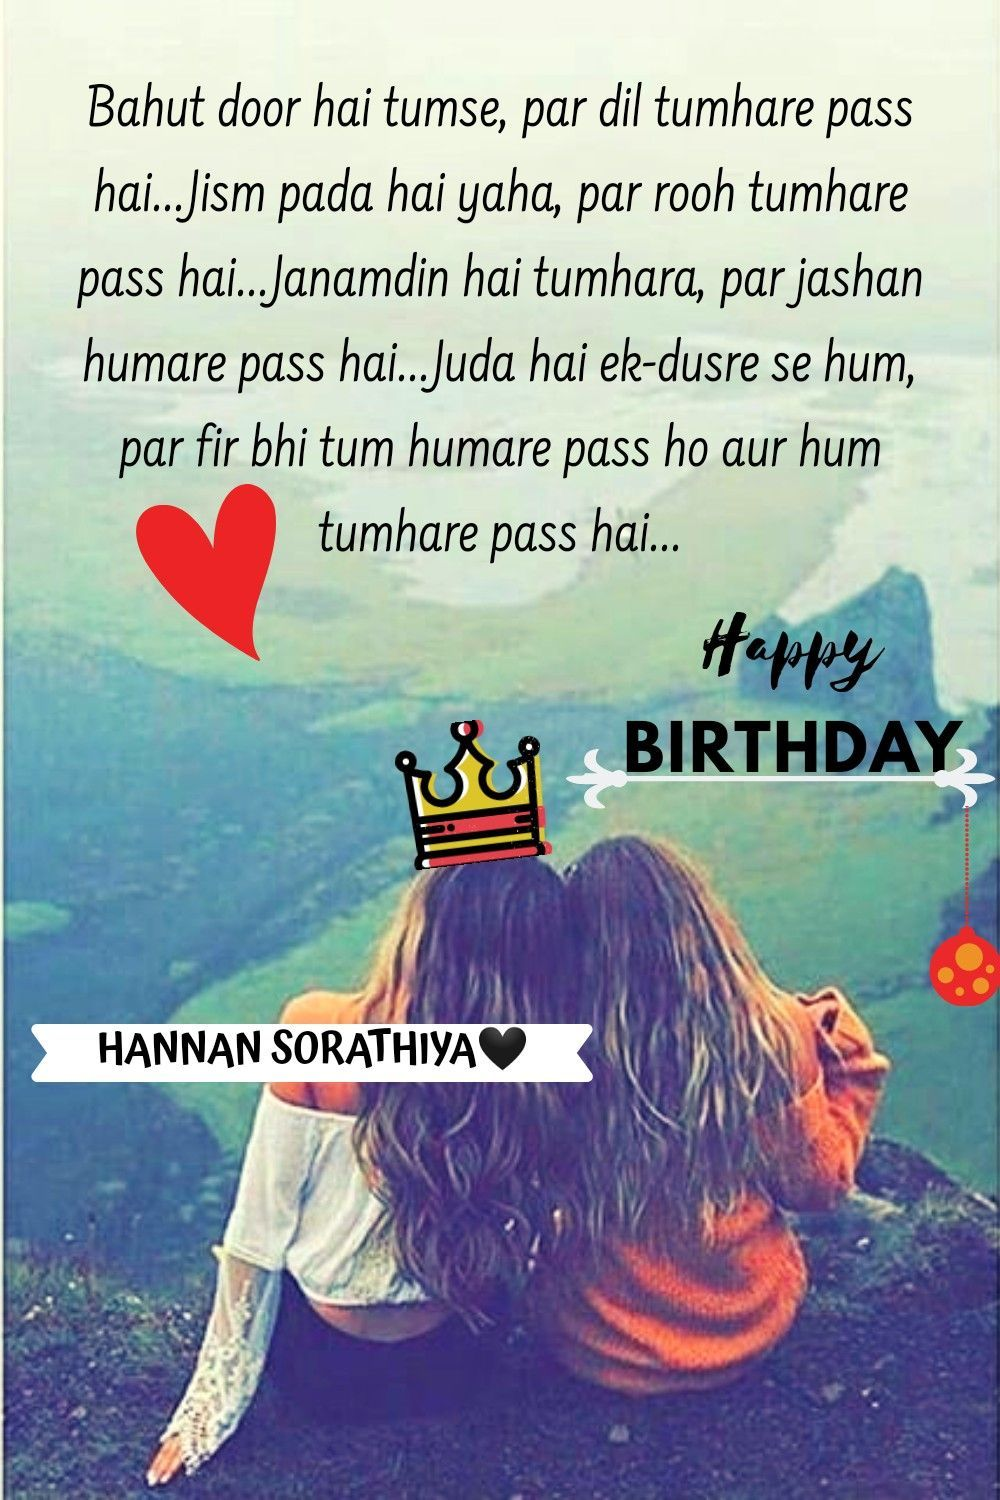 Pin By Laura Munoz On Urdu Quotes Birthday Messages For Son Birthday Wishes For Son Birthday Cards For Son